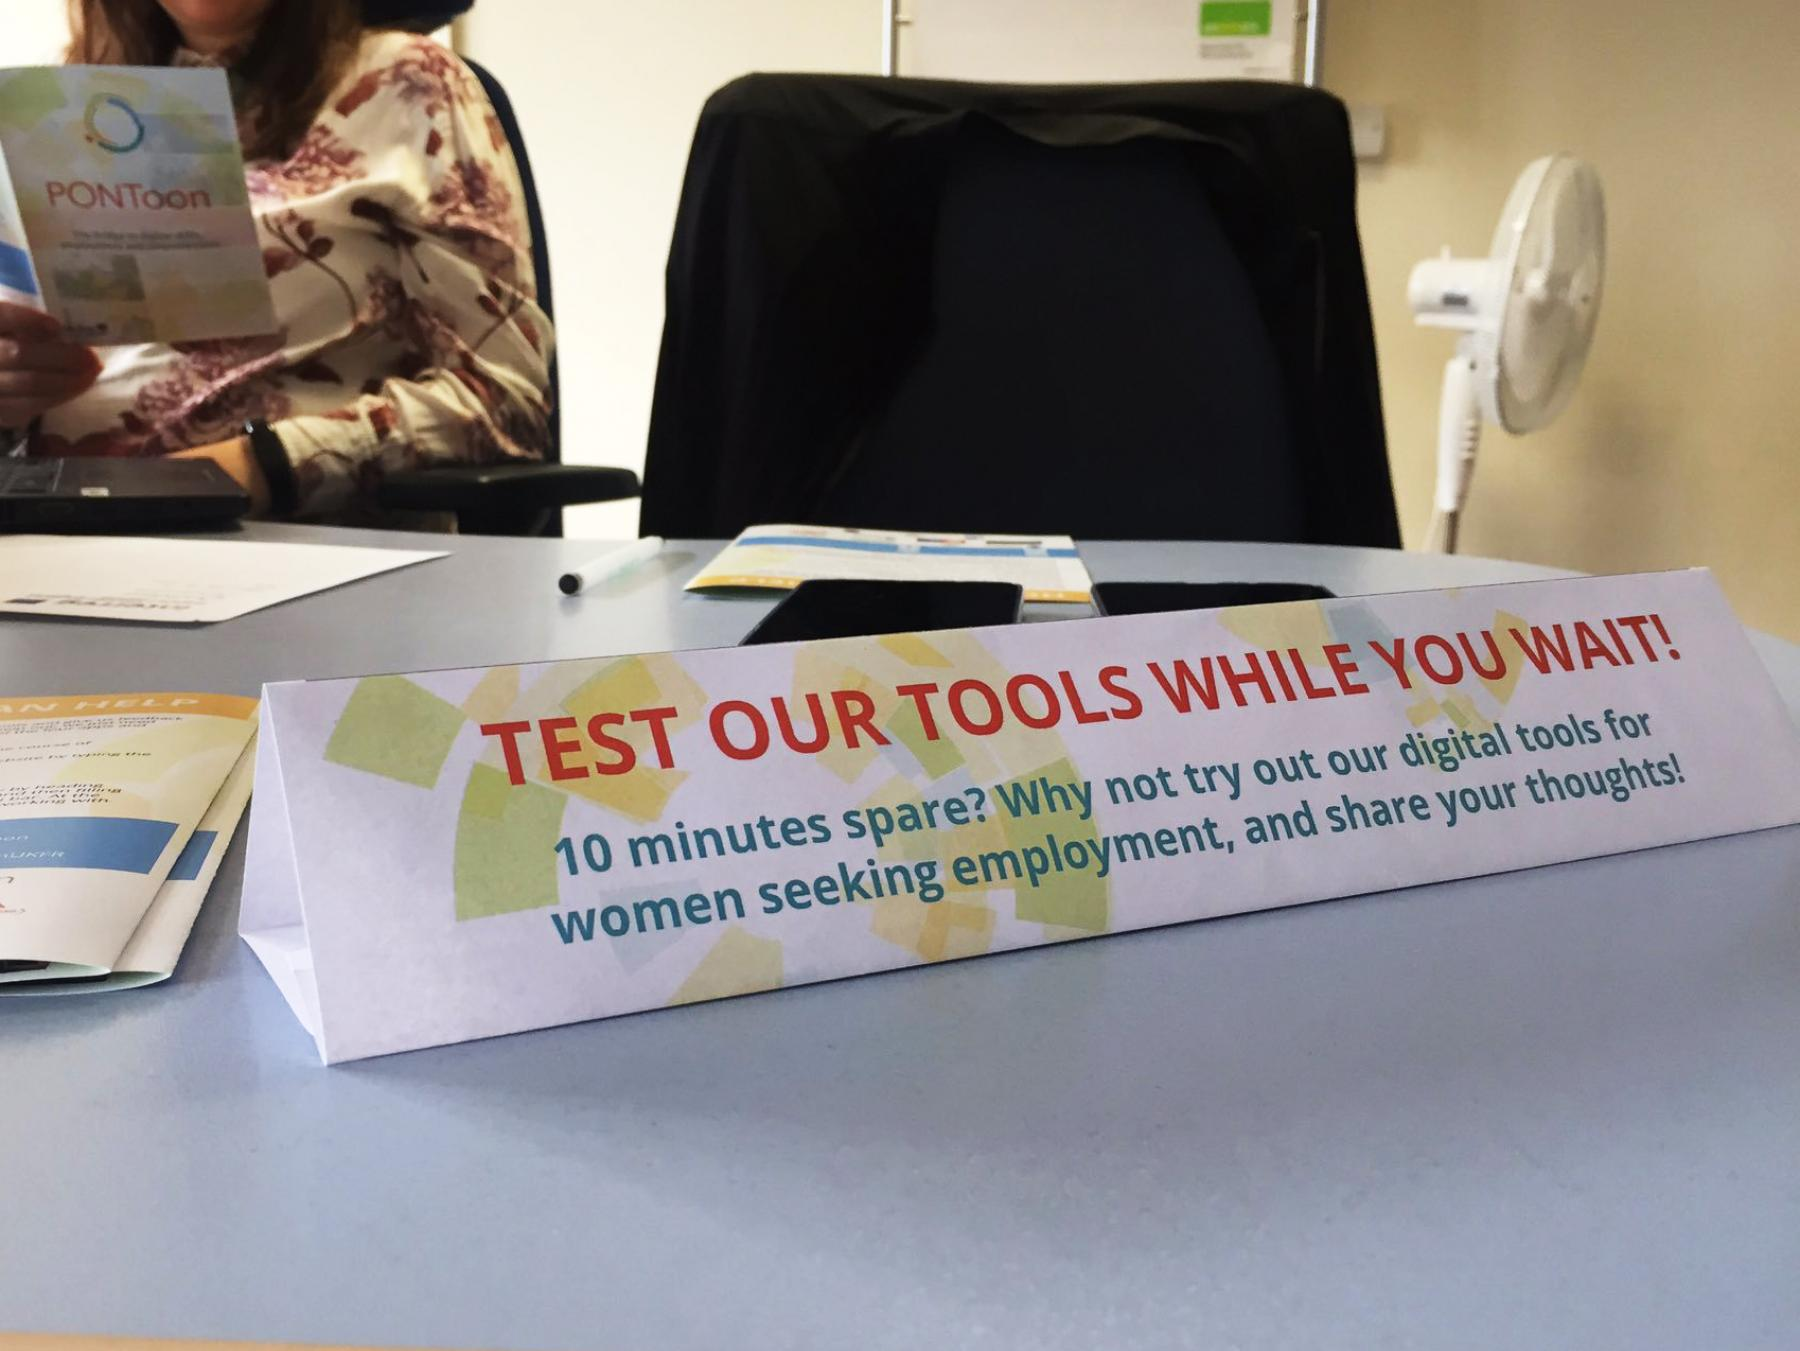 PONToon Partners Eastleigh Borough Council tested tools at the Job Centre